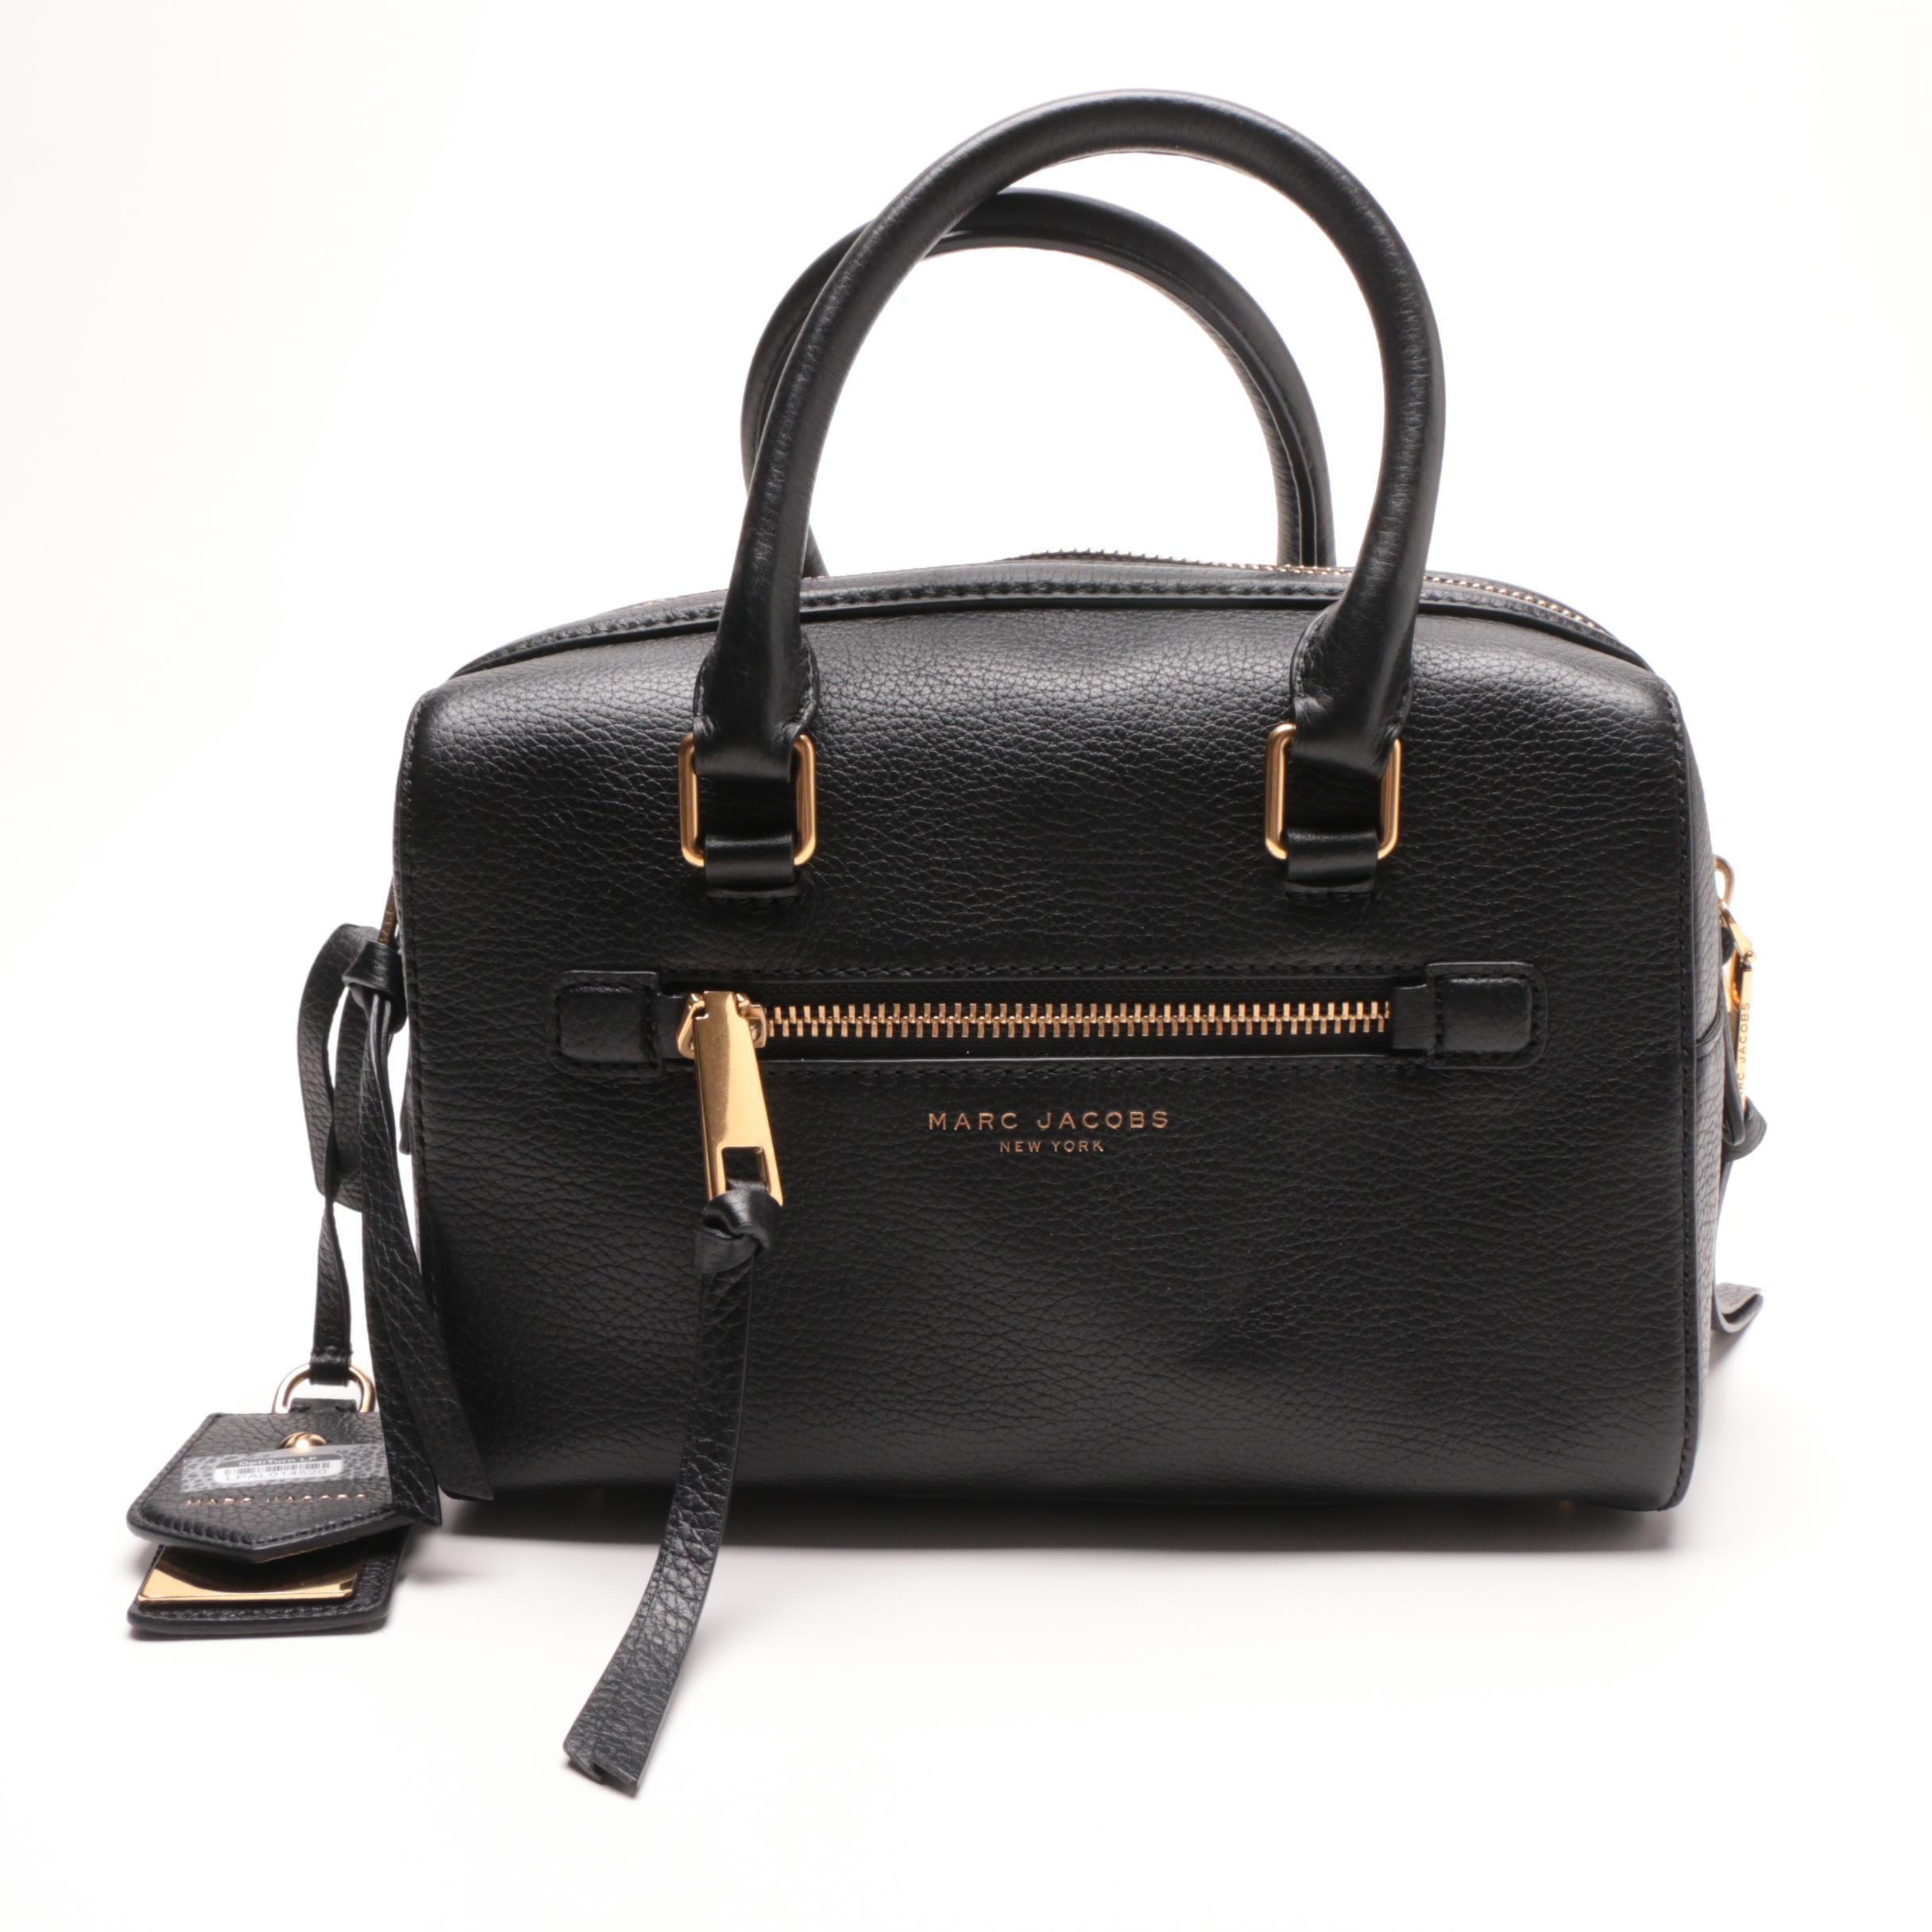 Marc Jacobs New York Recruit Bauletto Black Leather Handbag